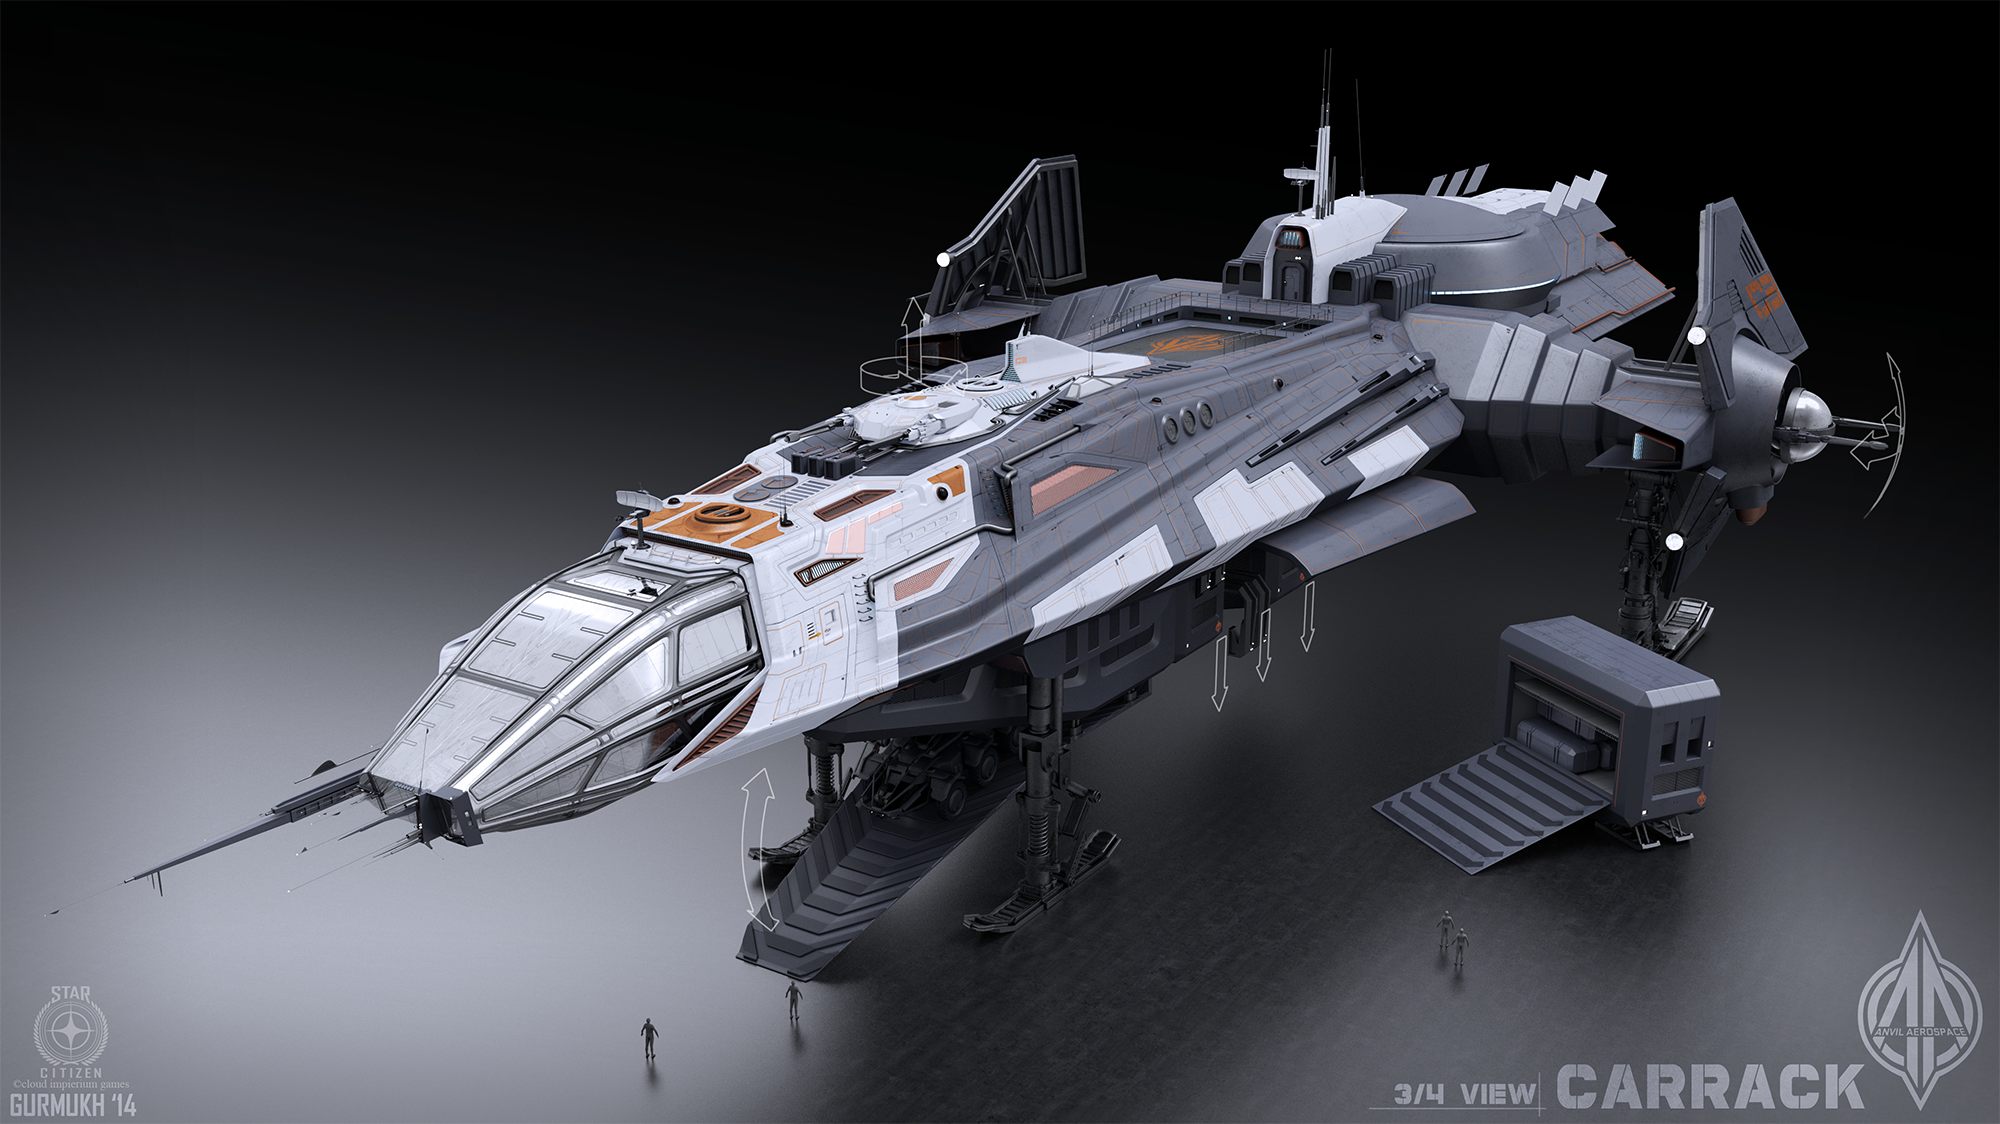 I want to live in this cool spaceship from Star Citizen